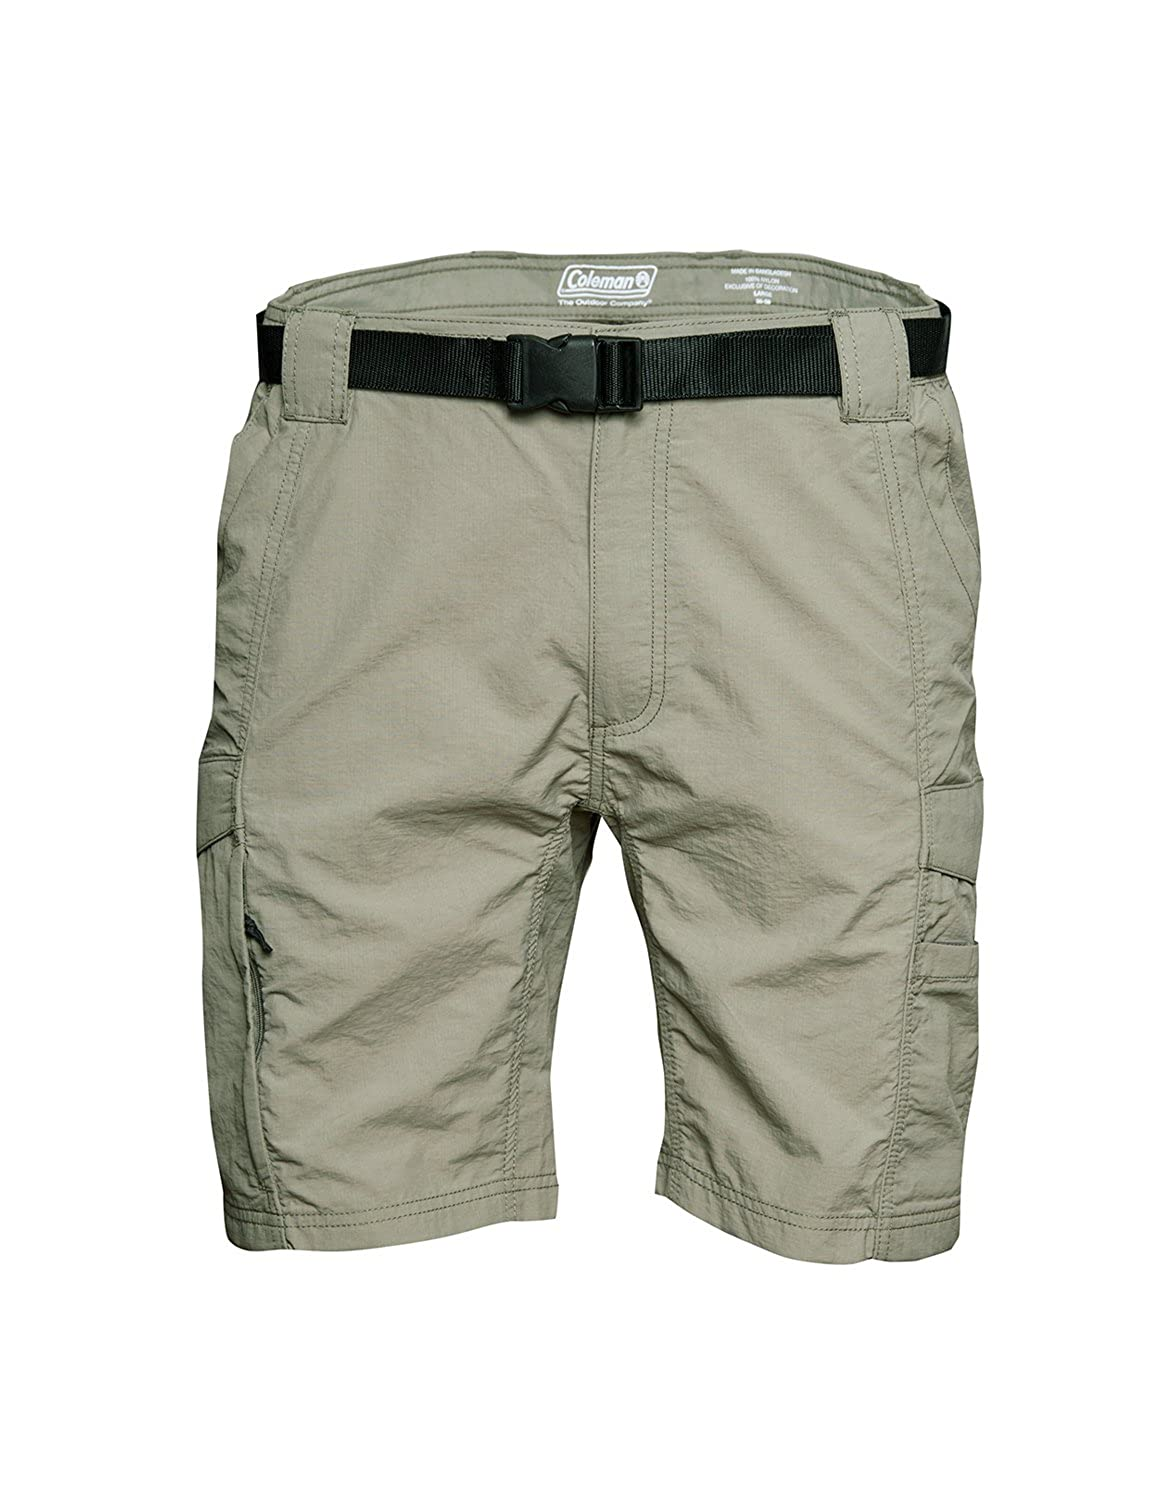 23129c51db Amazon.com: Coleman Men's Hiking Cargo Shorts (X-Large, Eucalyptus):  Clothing